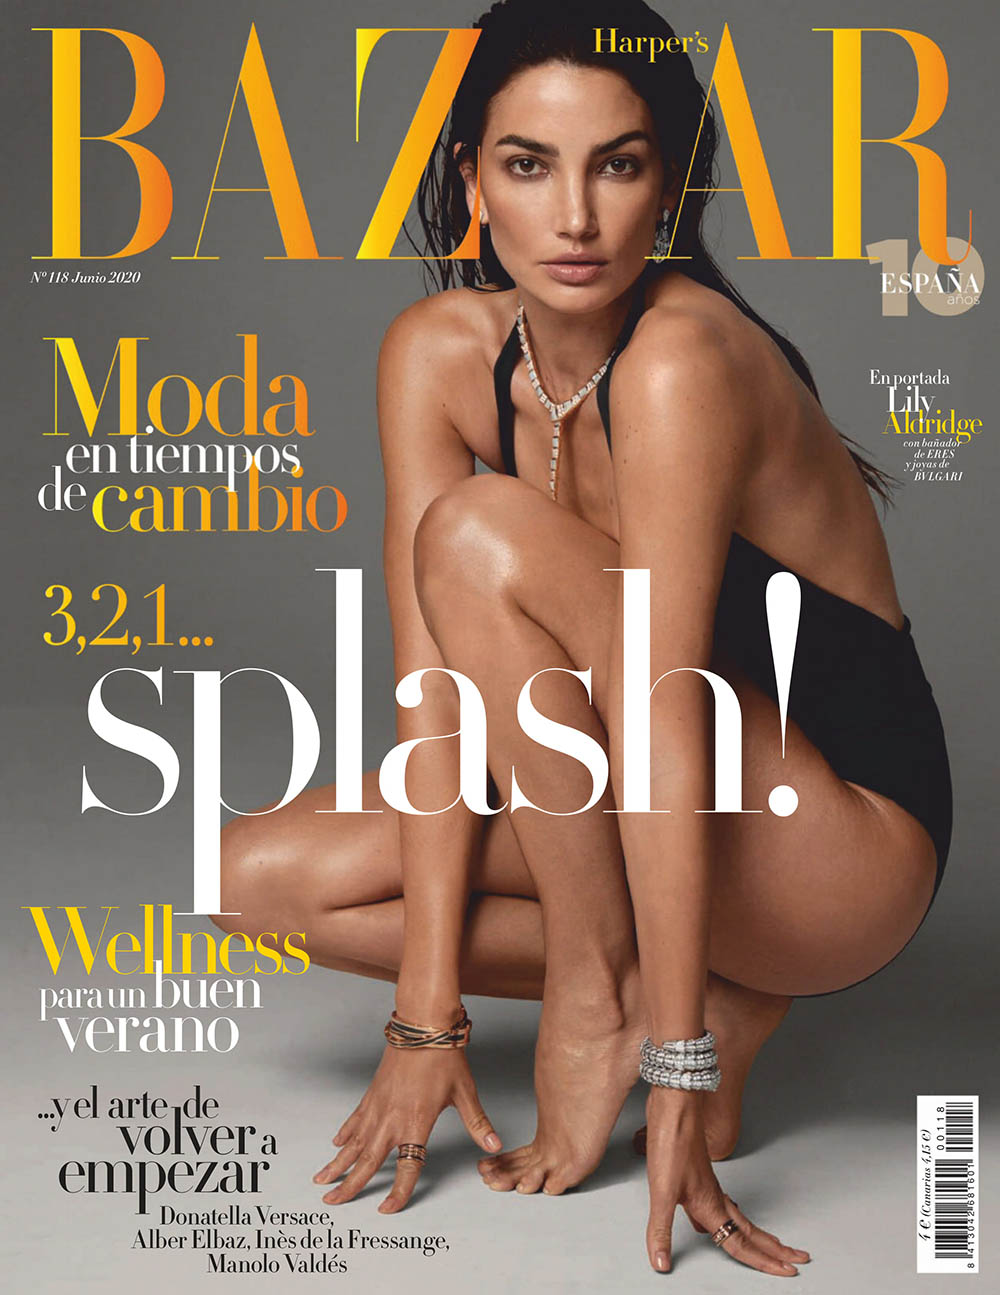 Lily Aldridge covers Harper's Bazaar Spain June 2020 by David Roemer